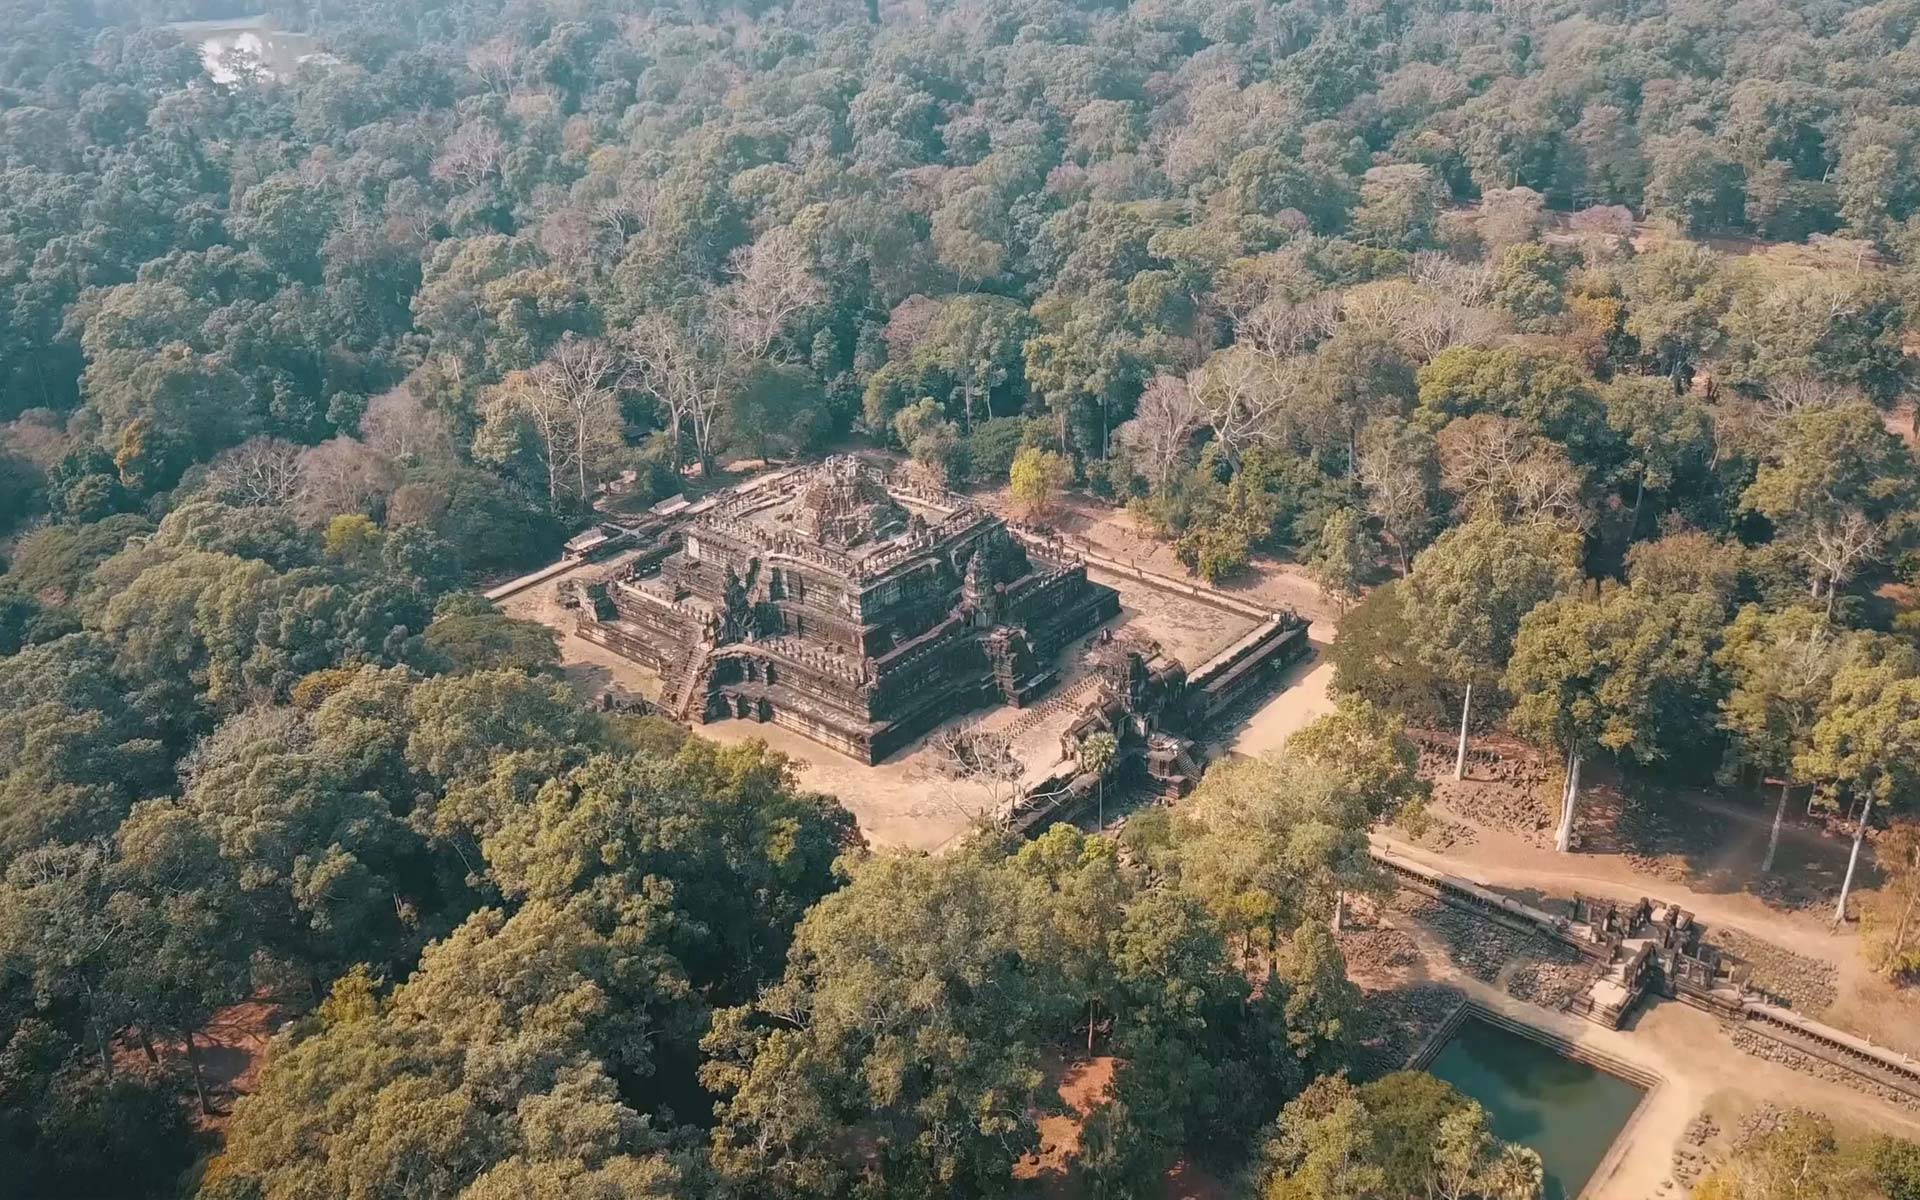 Bayon Temple from above